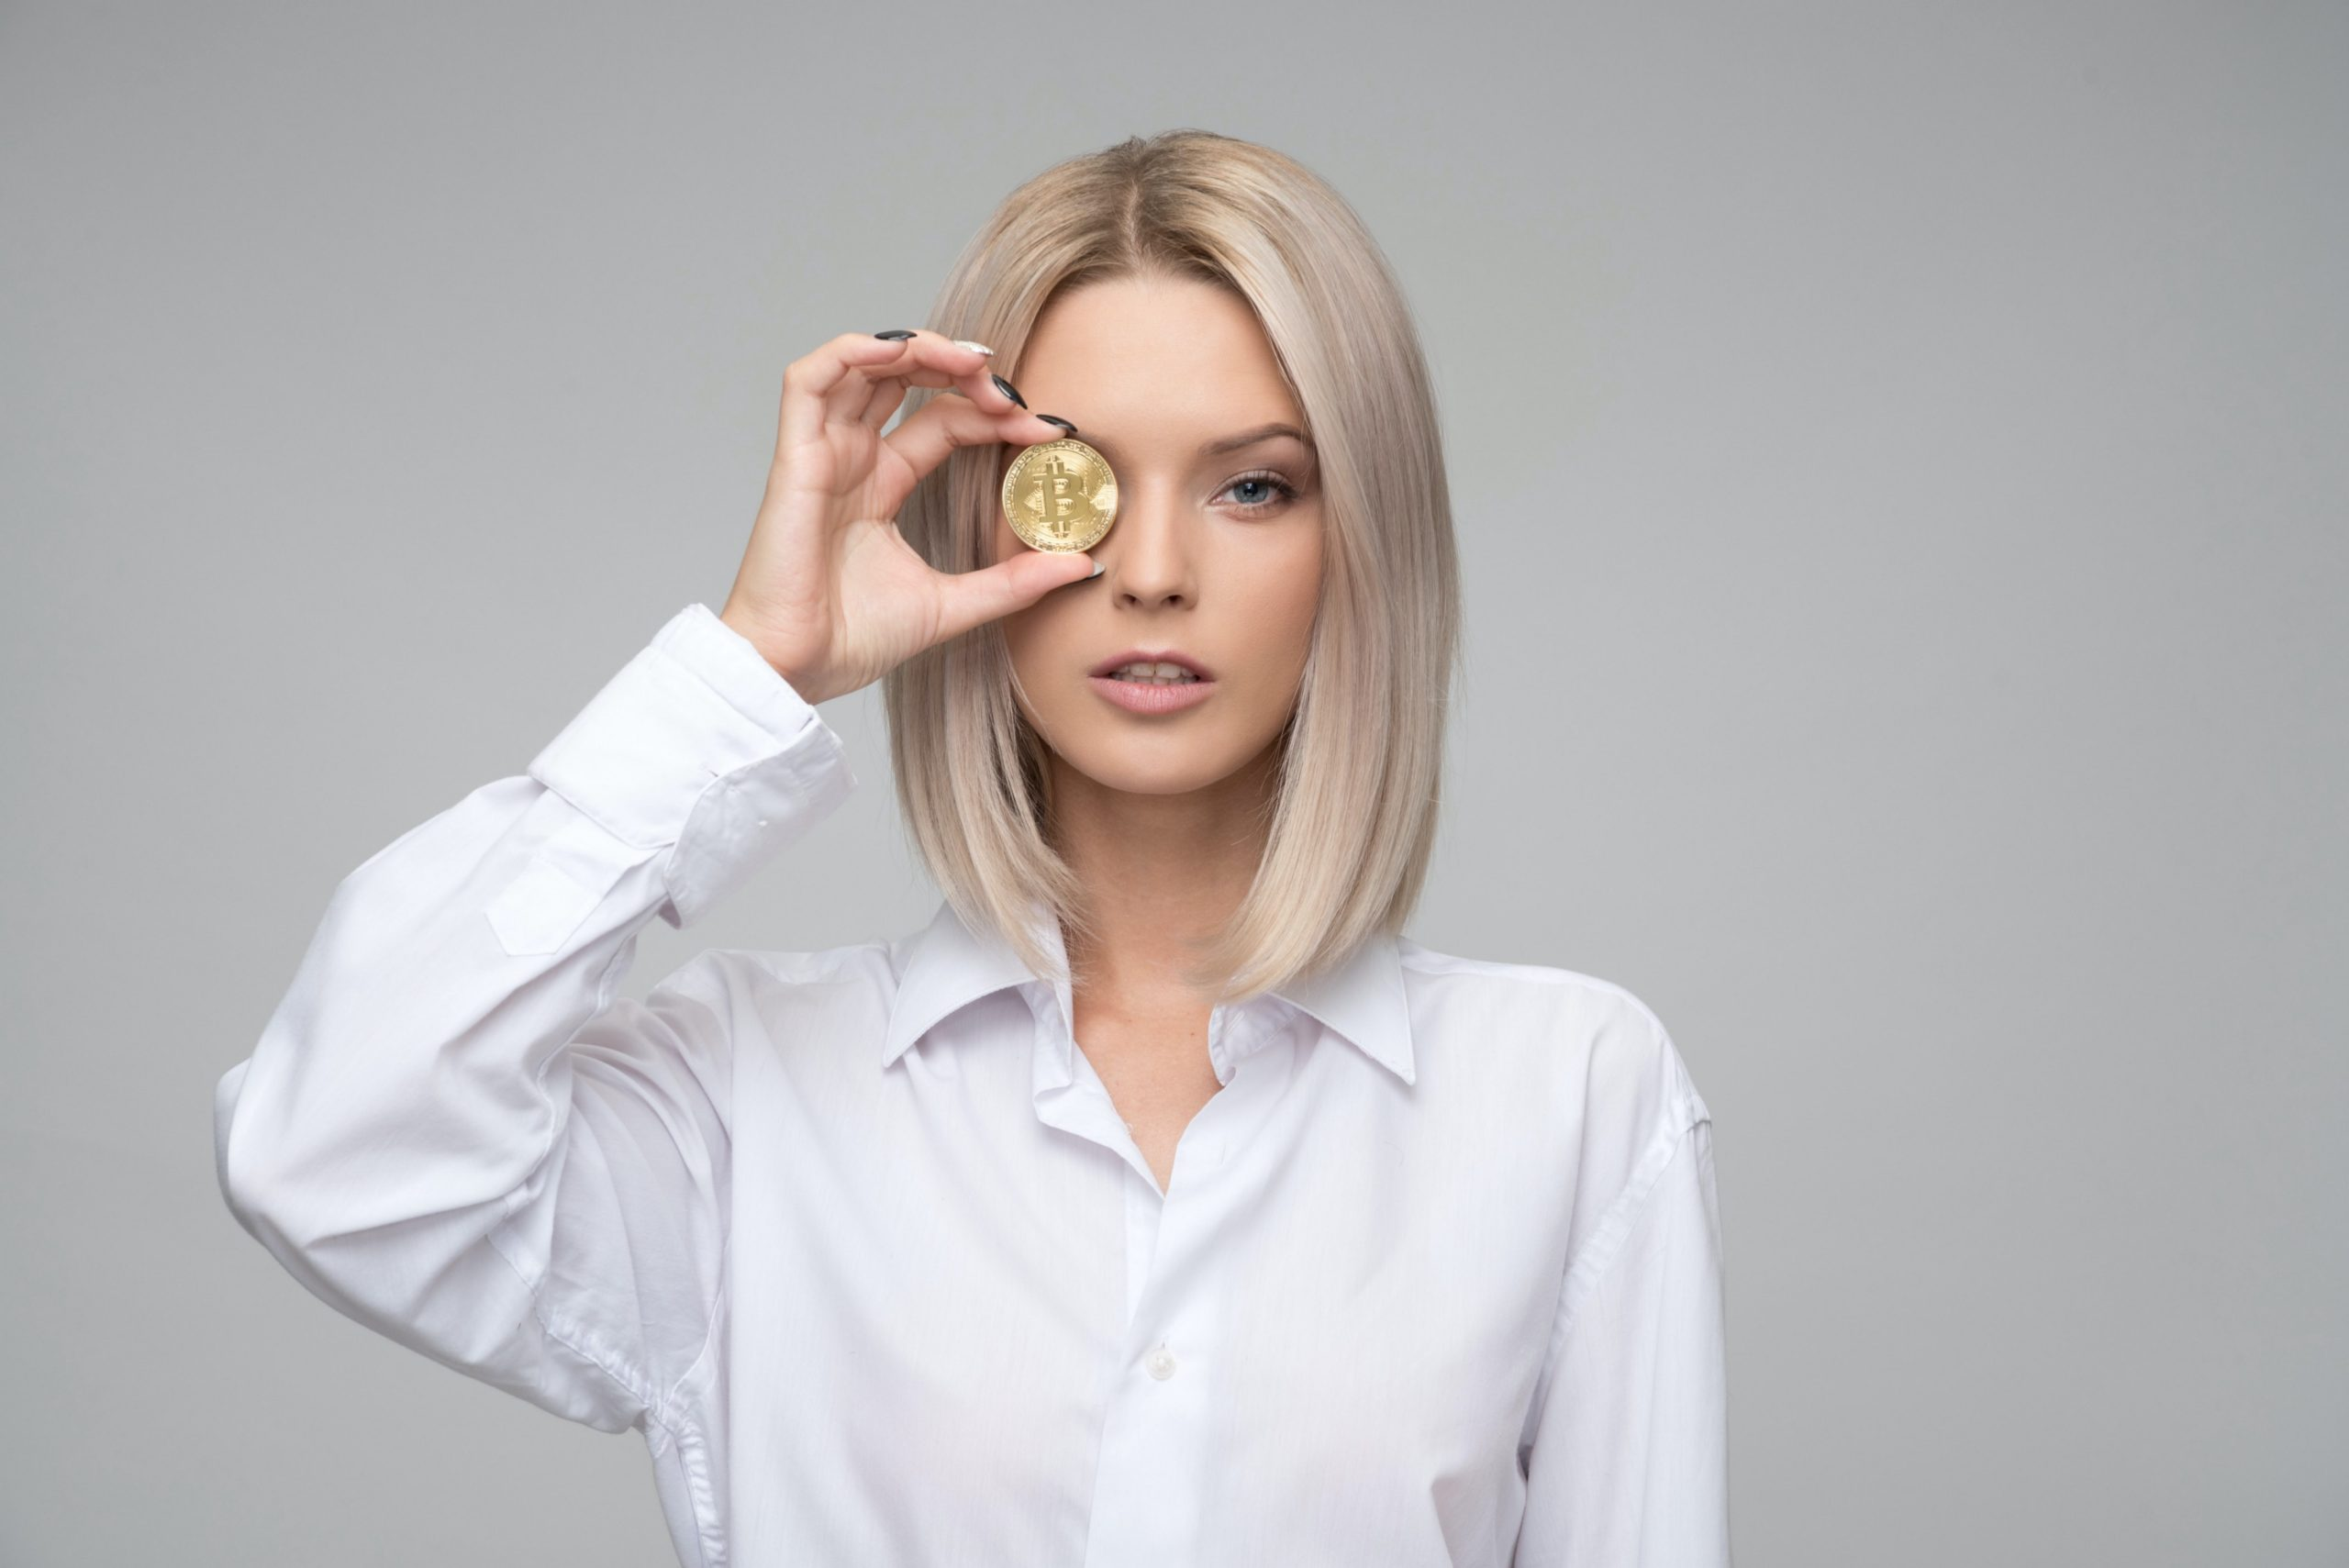 How I Plan to Make Millions in the Cryptocurrency Market